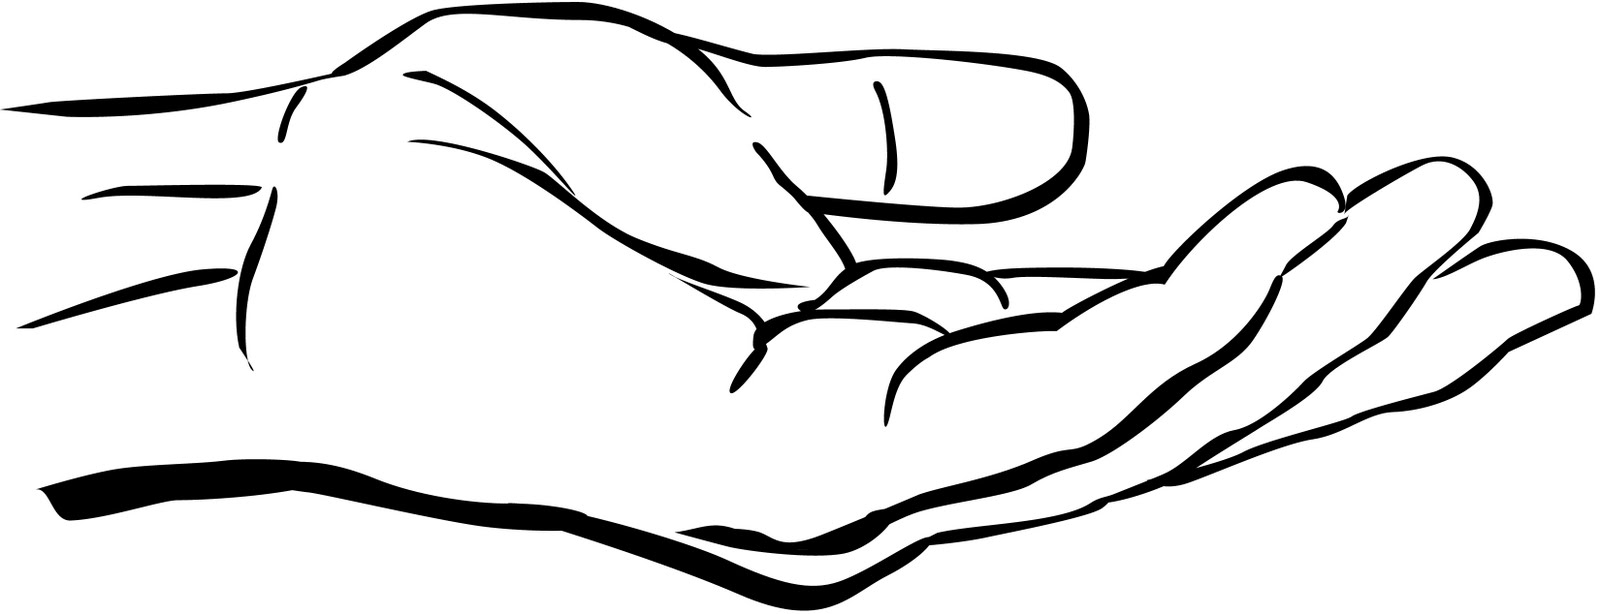 Hands clipart #11, Download drawings